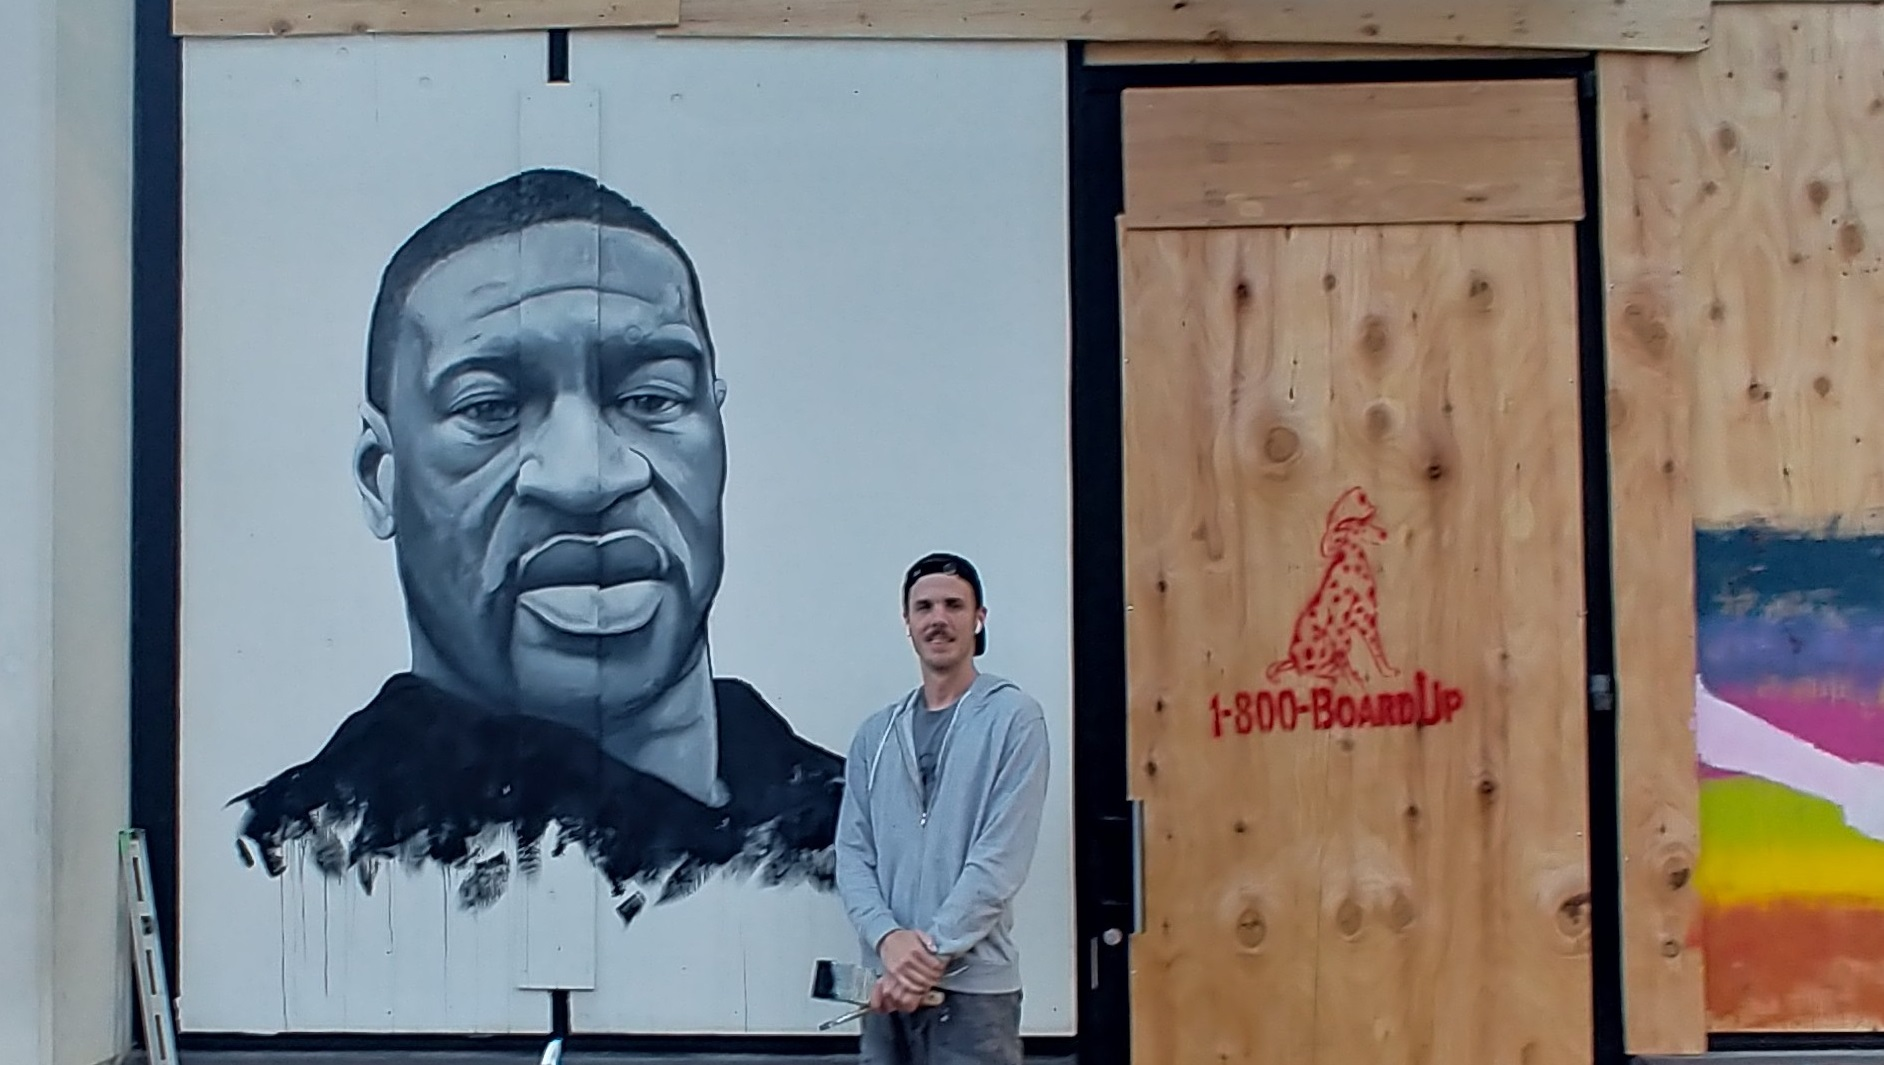 In University City, Artists Spend Hours Painting Portrait of George Floyd